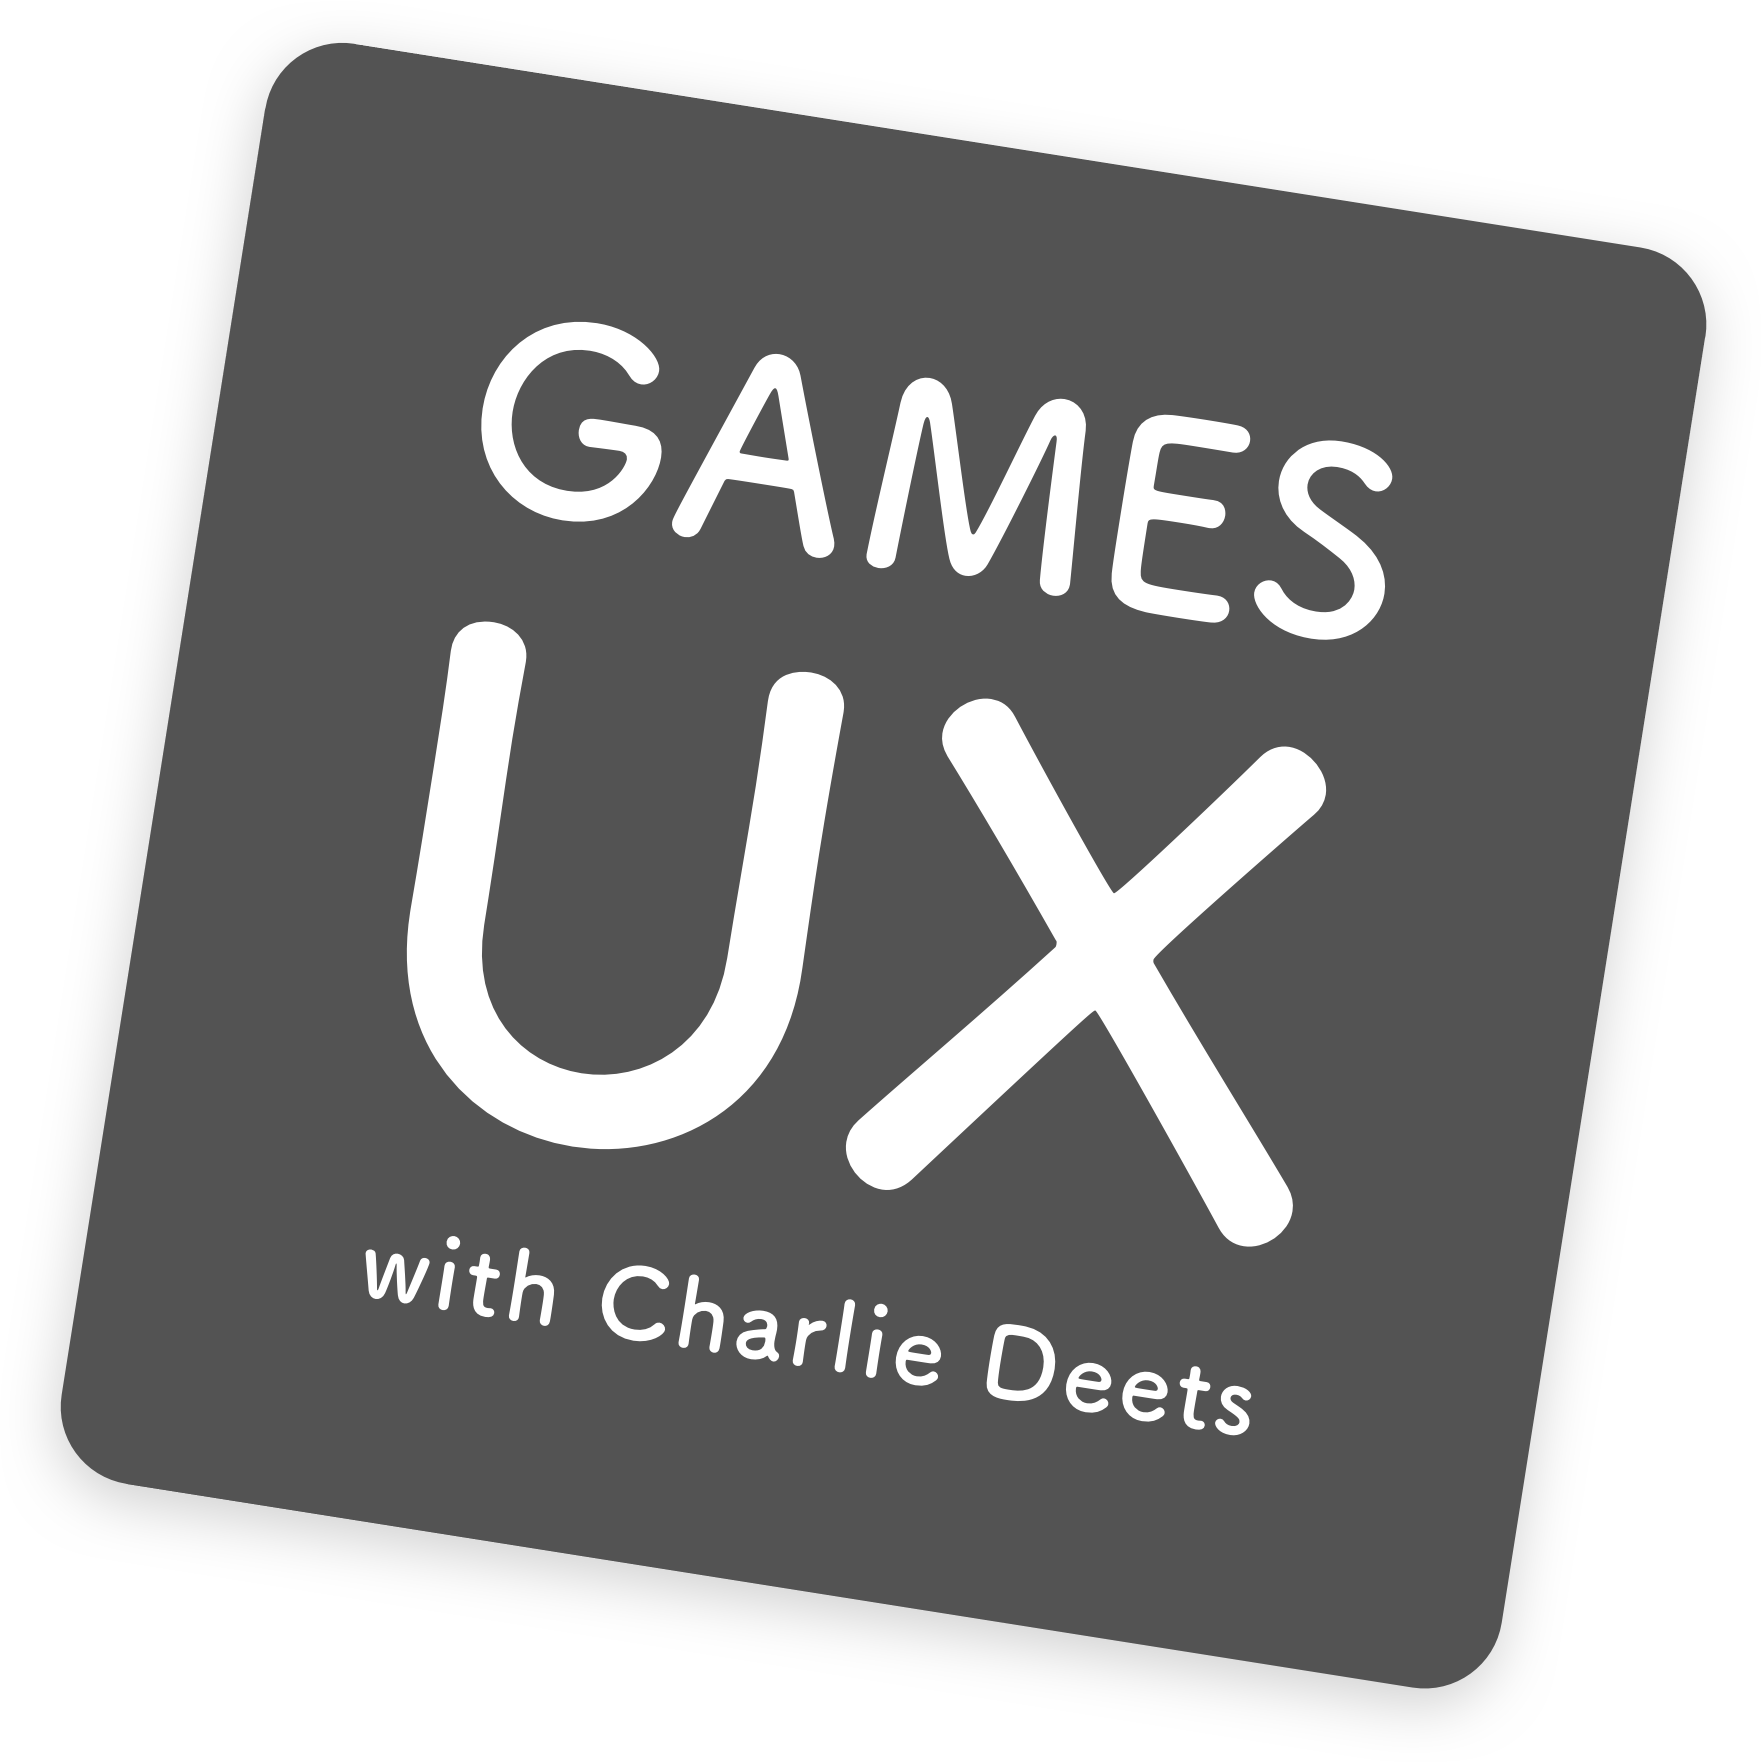 Games ux icon